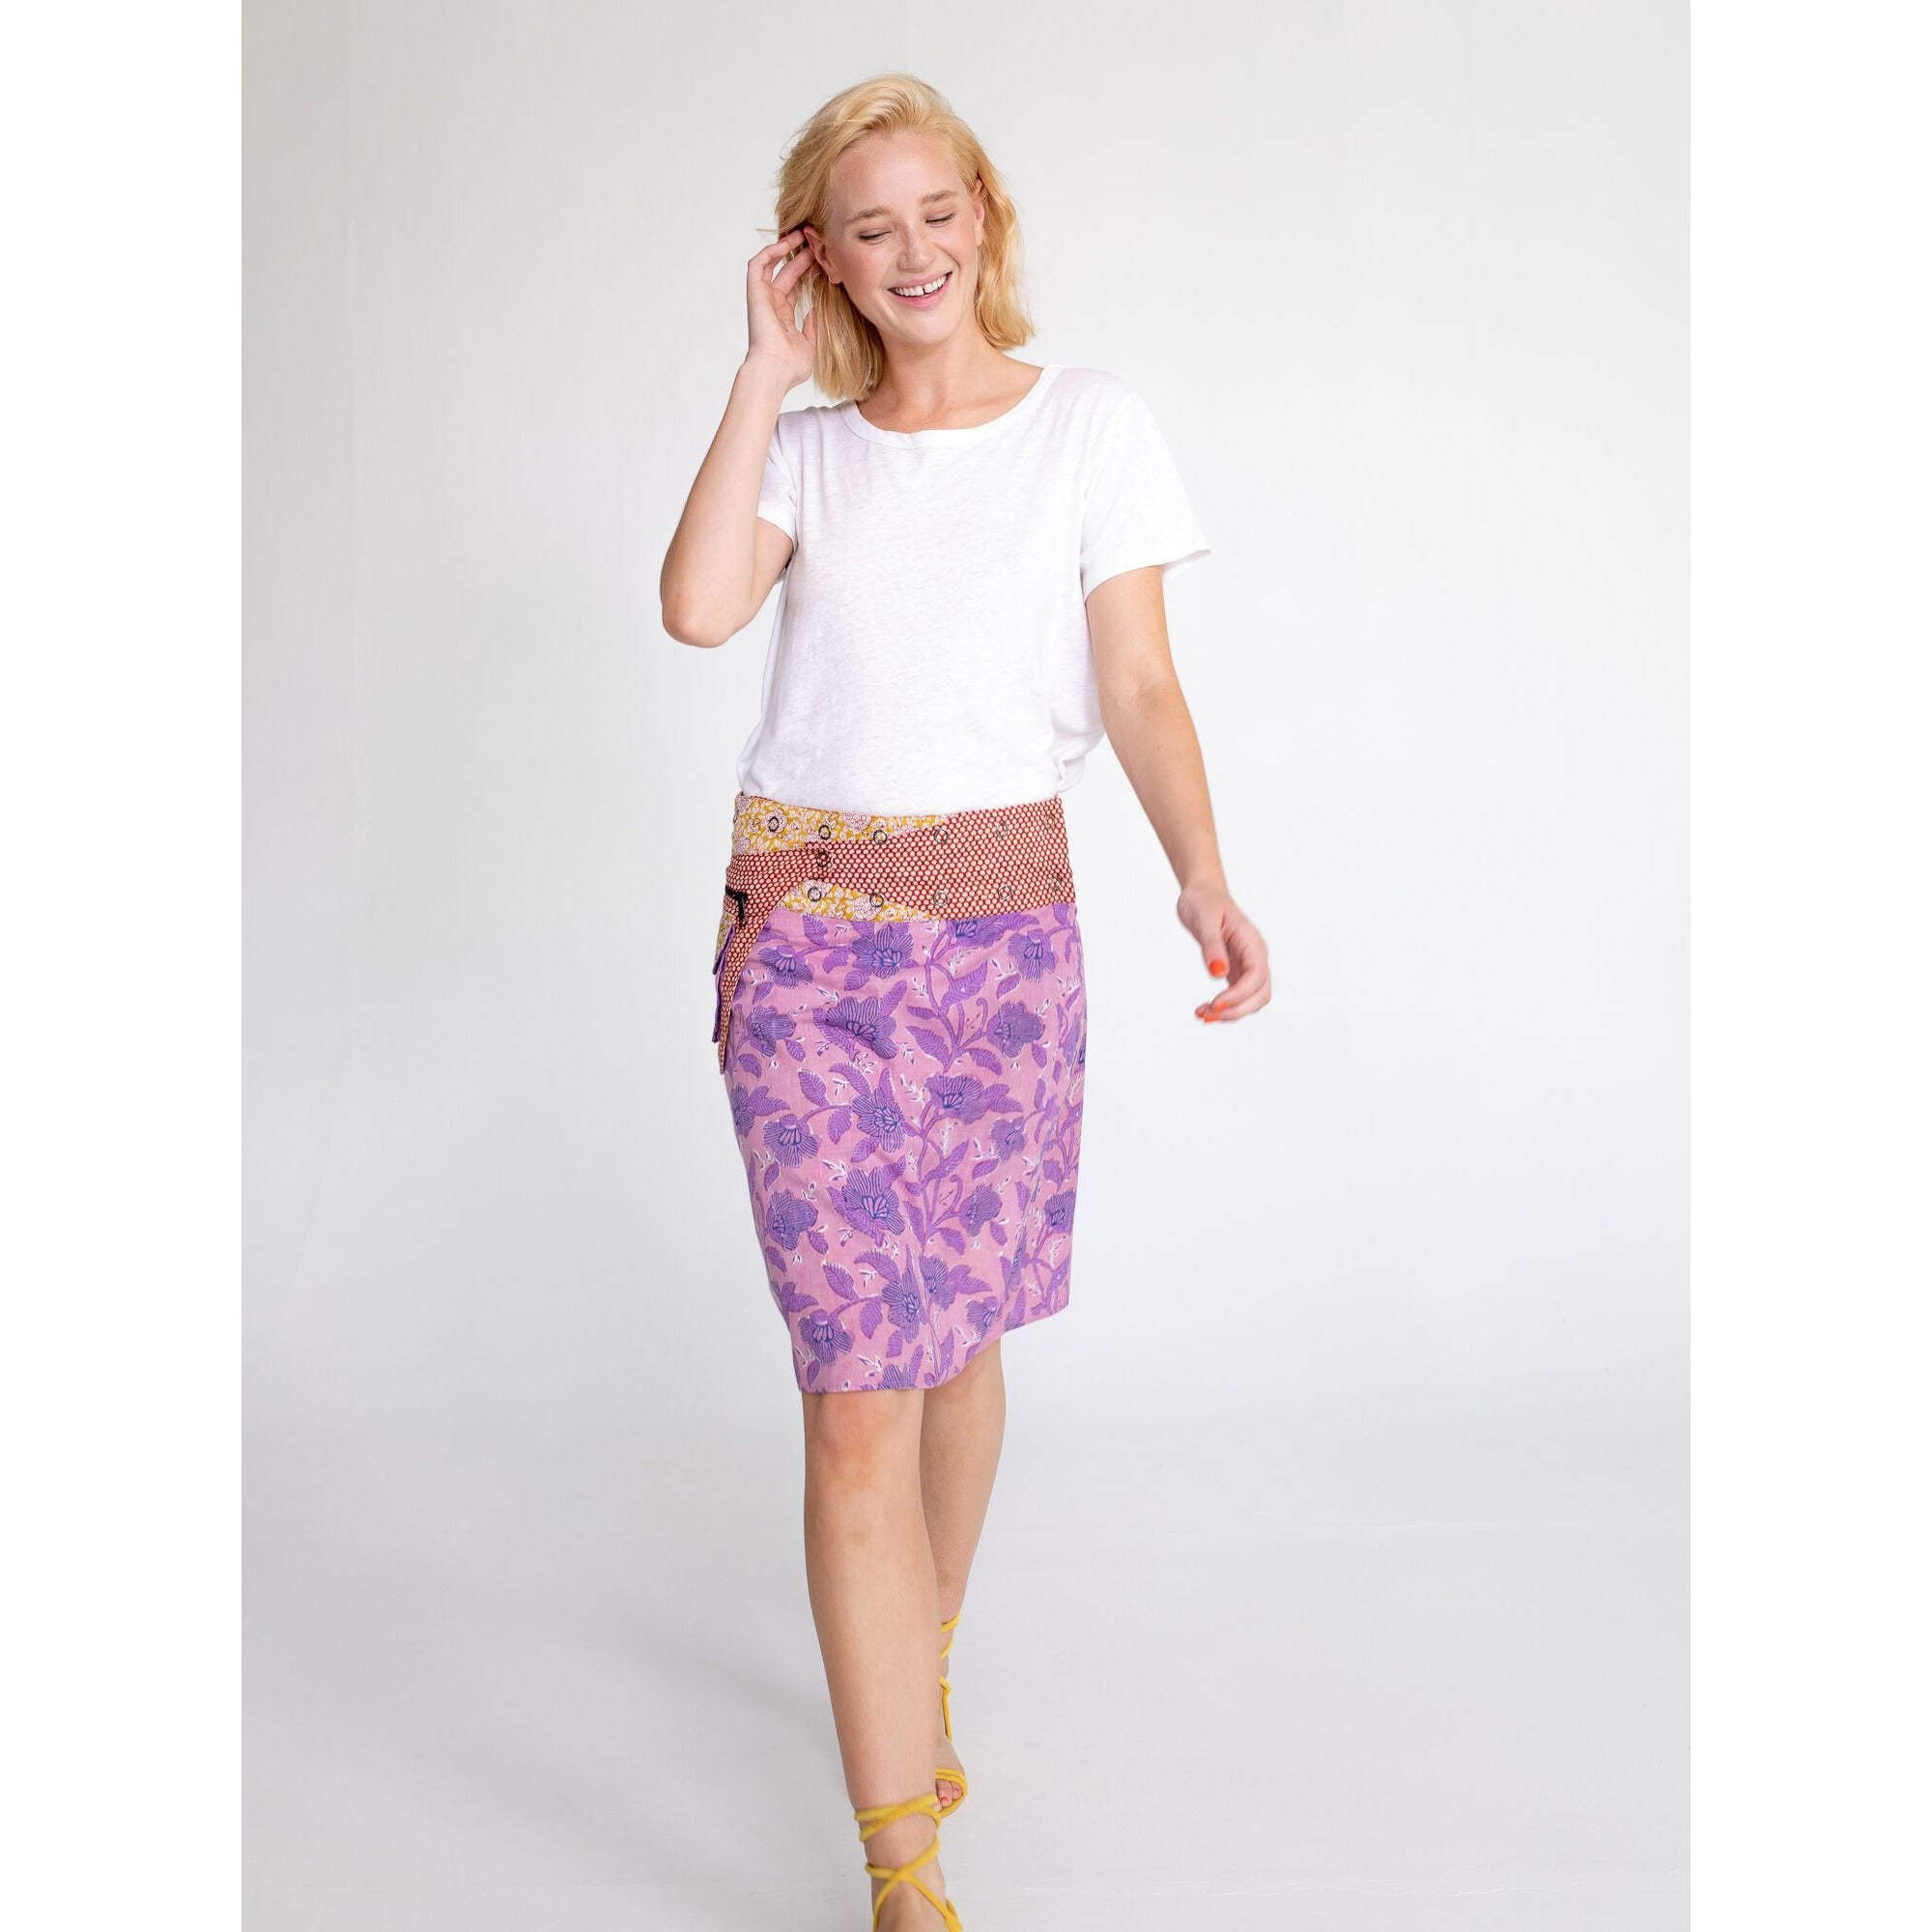 Boom Shankar Rosanna Long Skirt in Amber Zephyr Block Print